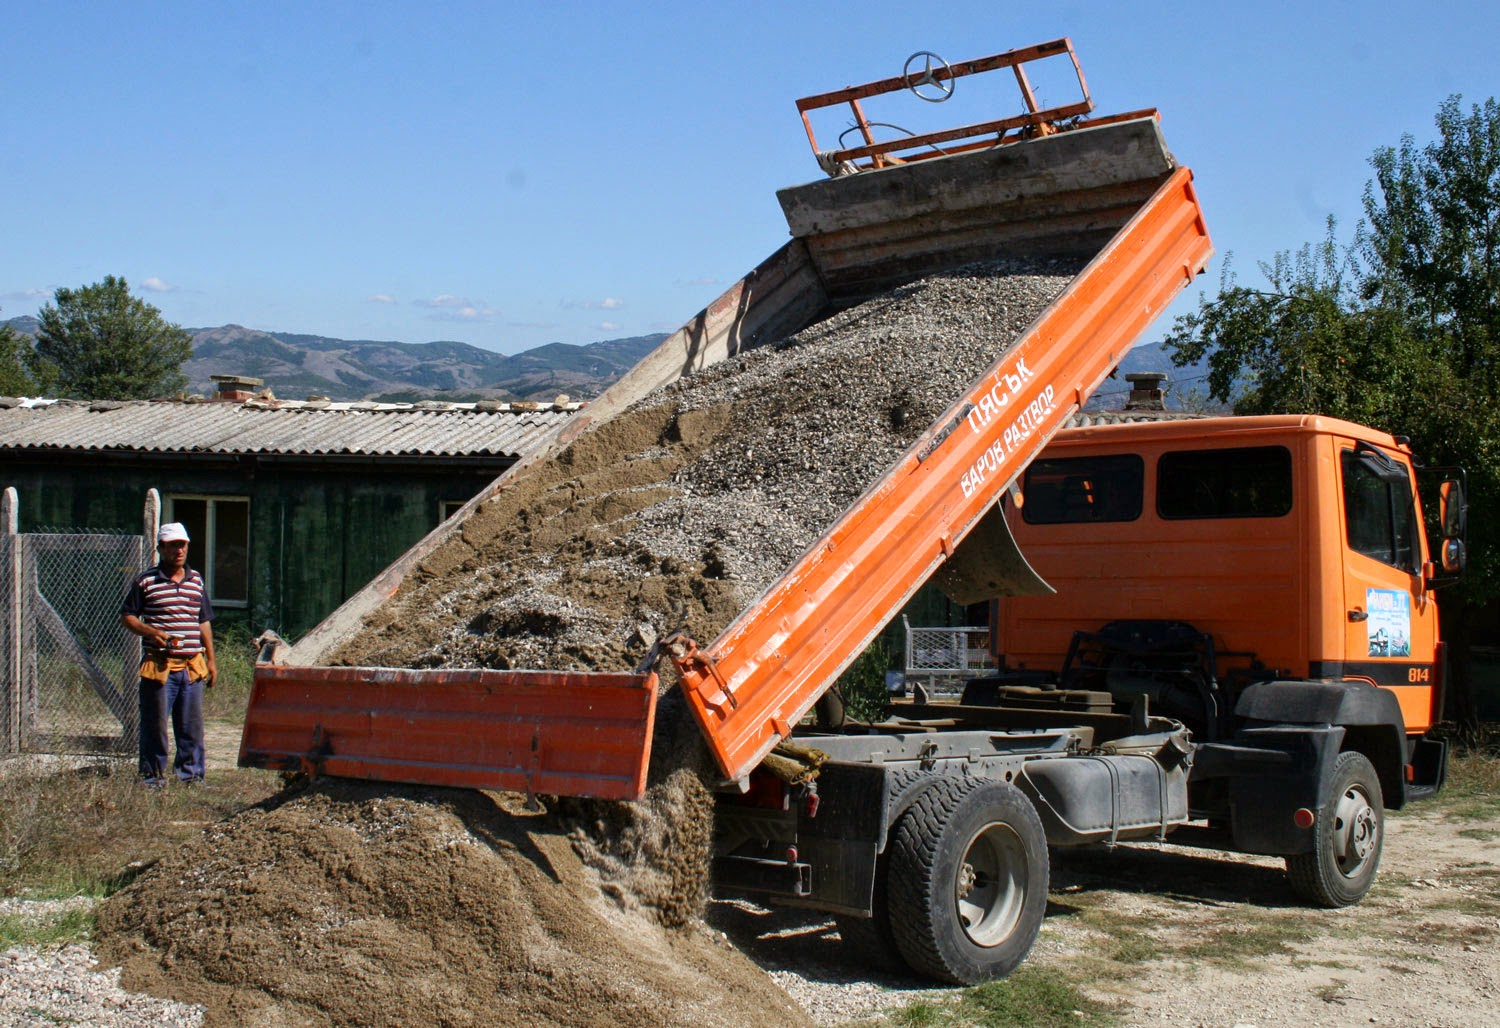 A delivery of gravel and sand for cement making